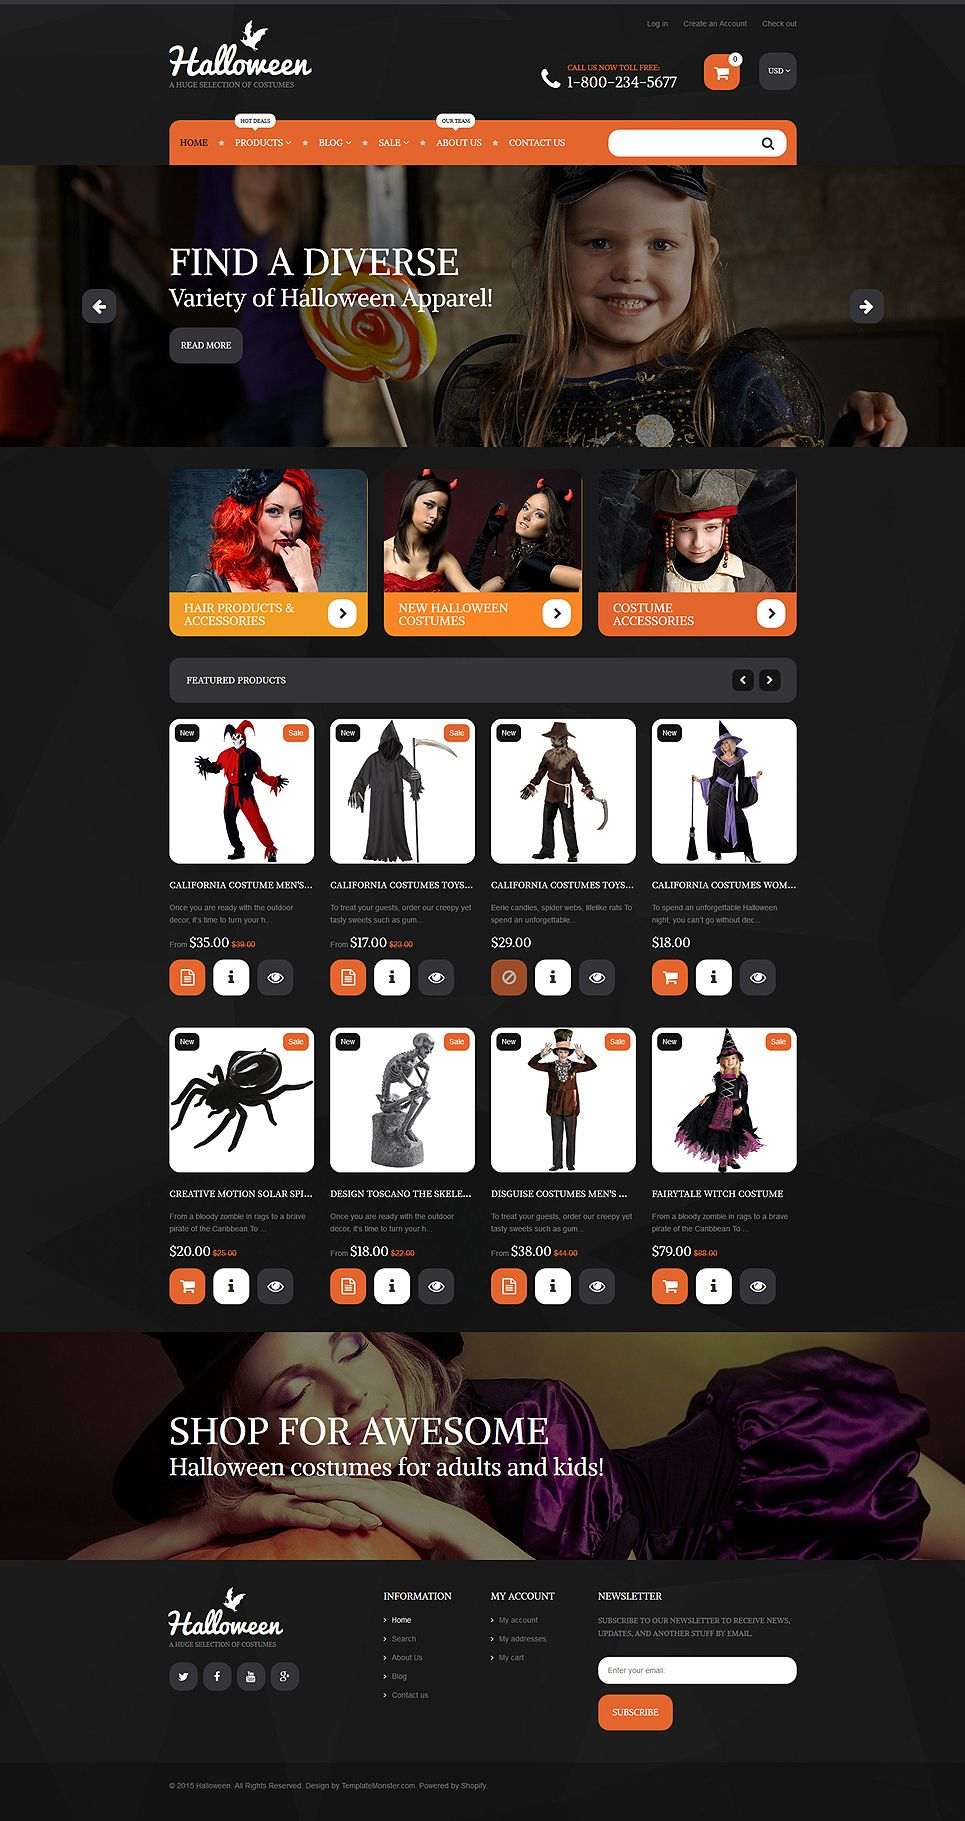 Halloween costumes shopify theme in 2018 shopify themes more than website templates available halloween costumes shopify theme ecommerce onlinestore httptemplatemonster maxwellsz